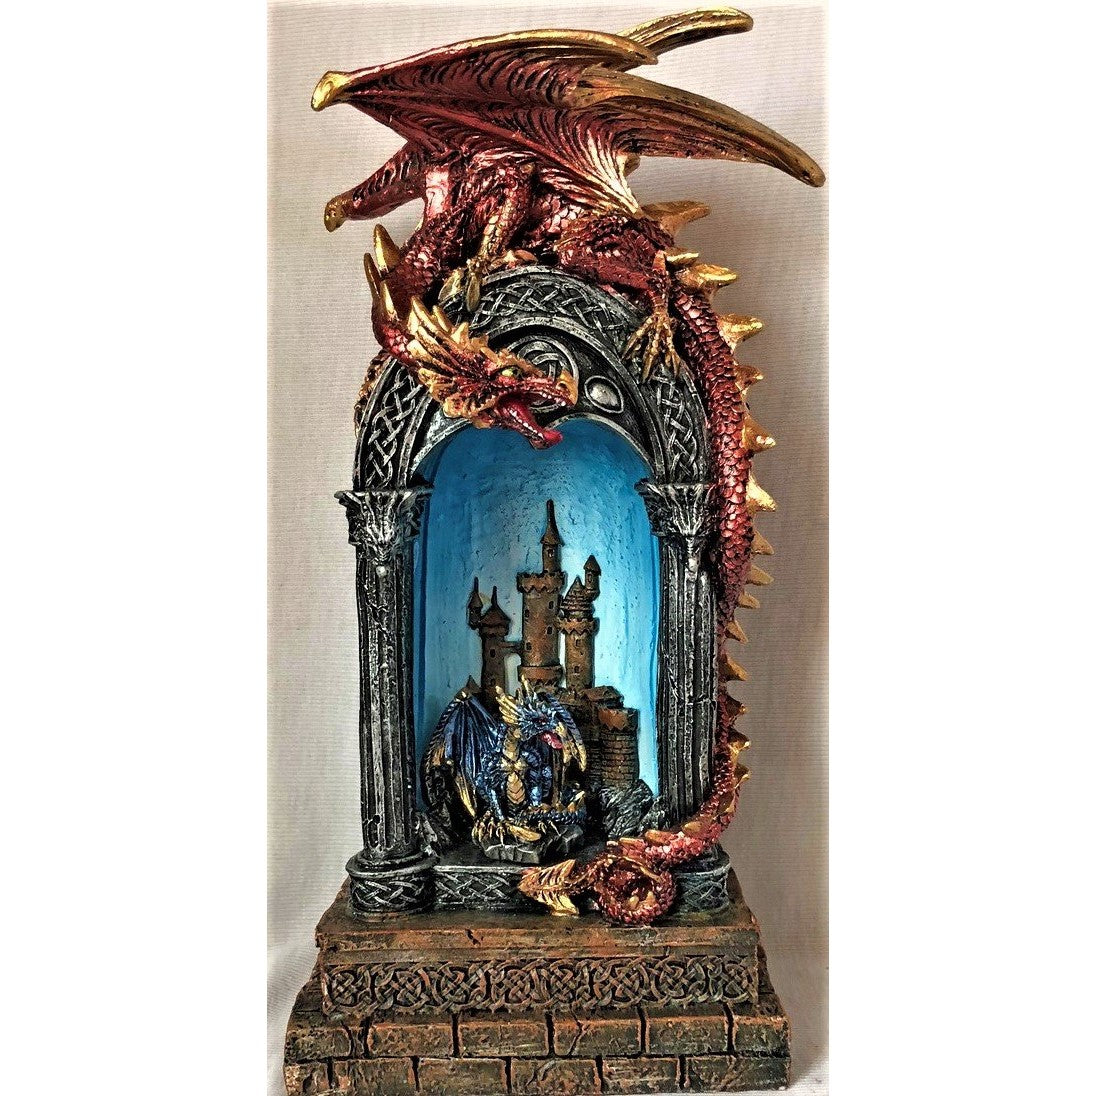 Dragon on Archway - Rivendell Shop